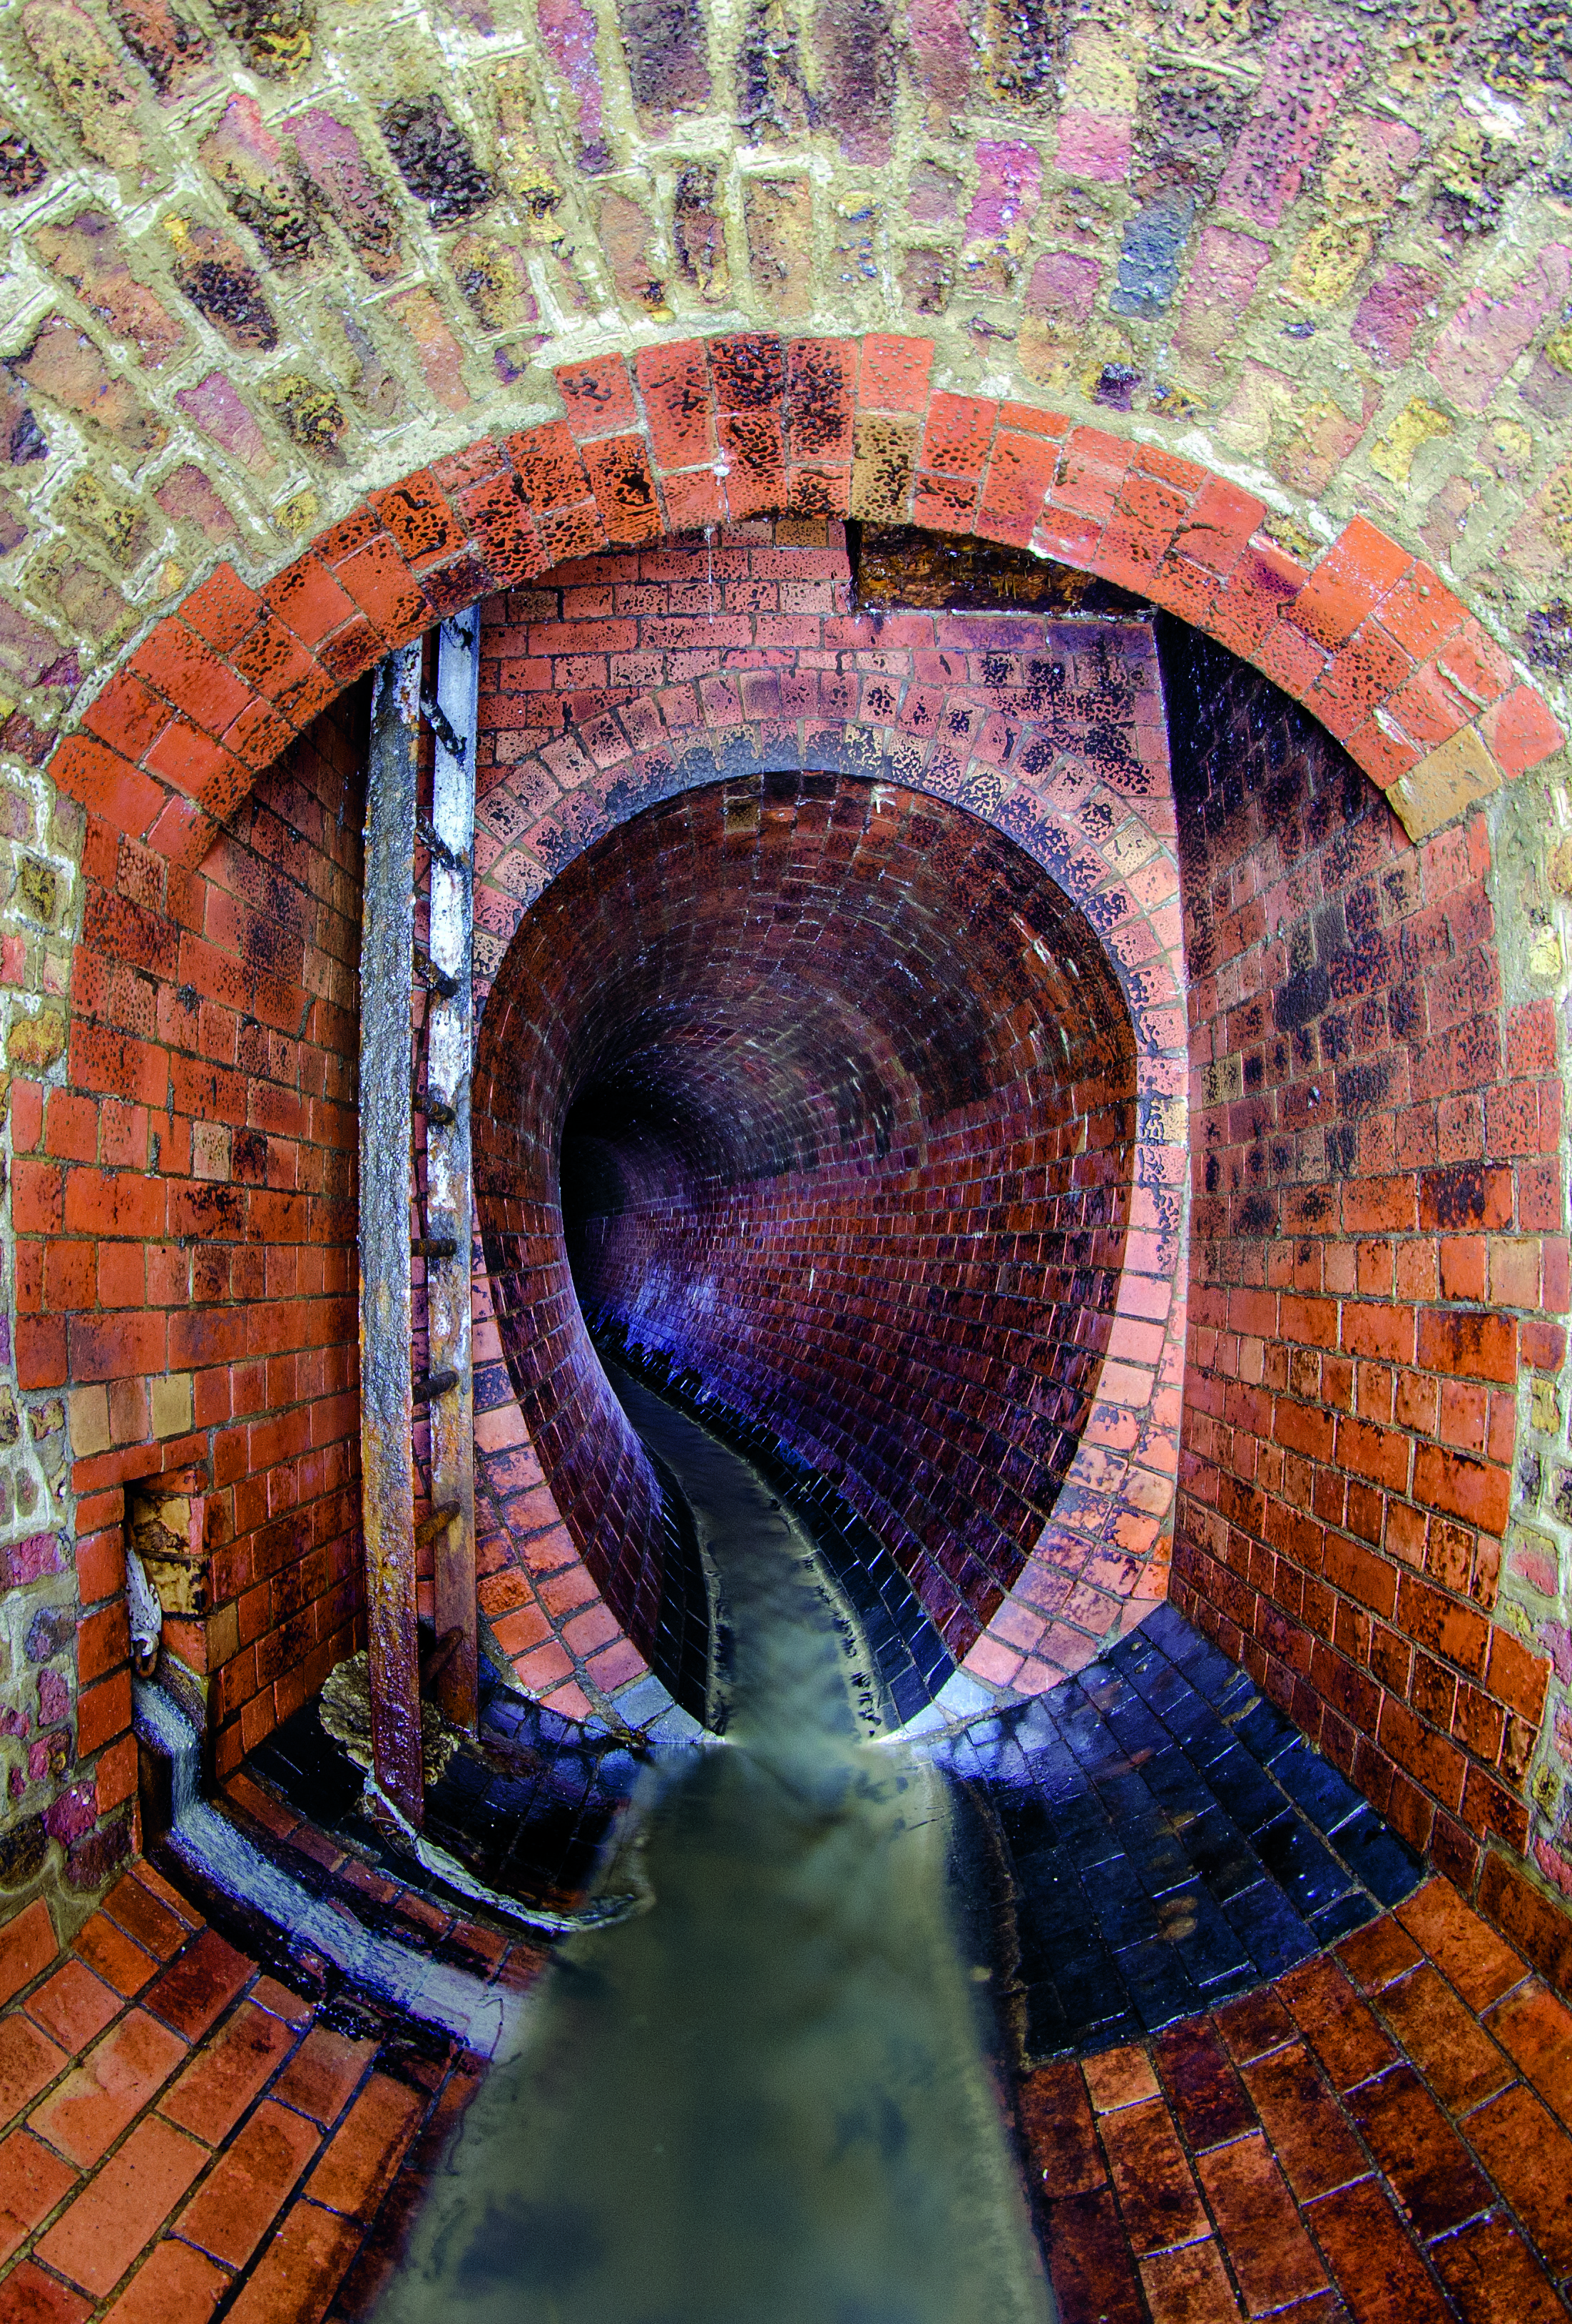 This undated photo was taken in King's Scholars' Pond Sewer in London, UK.